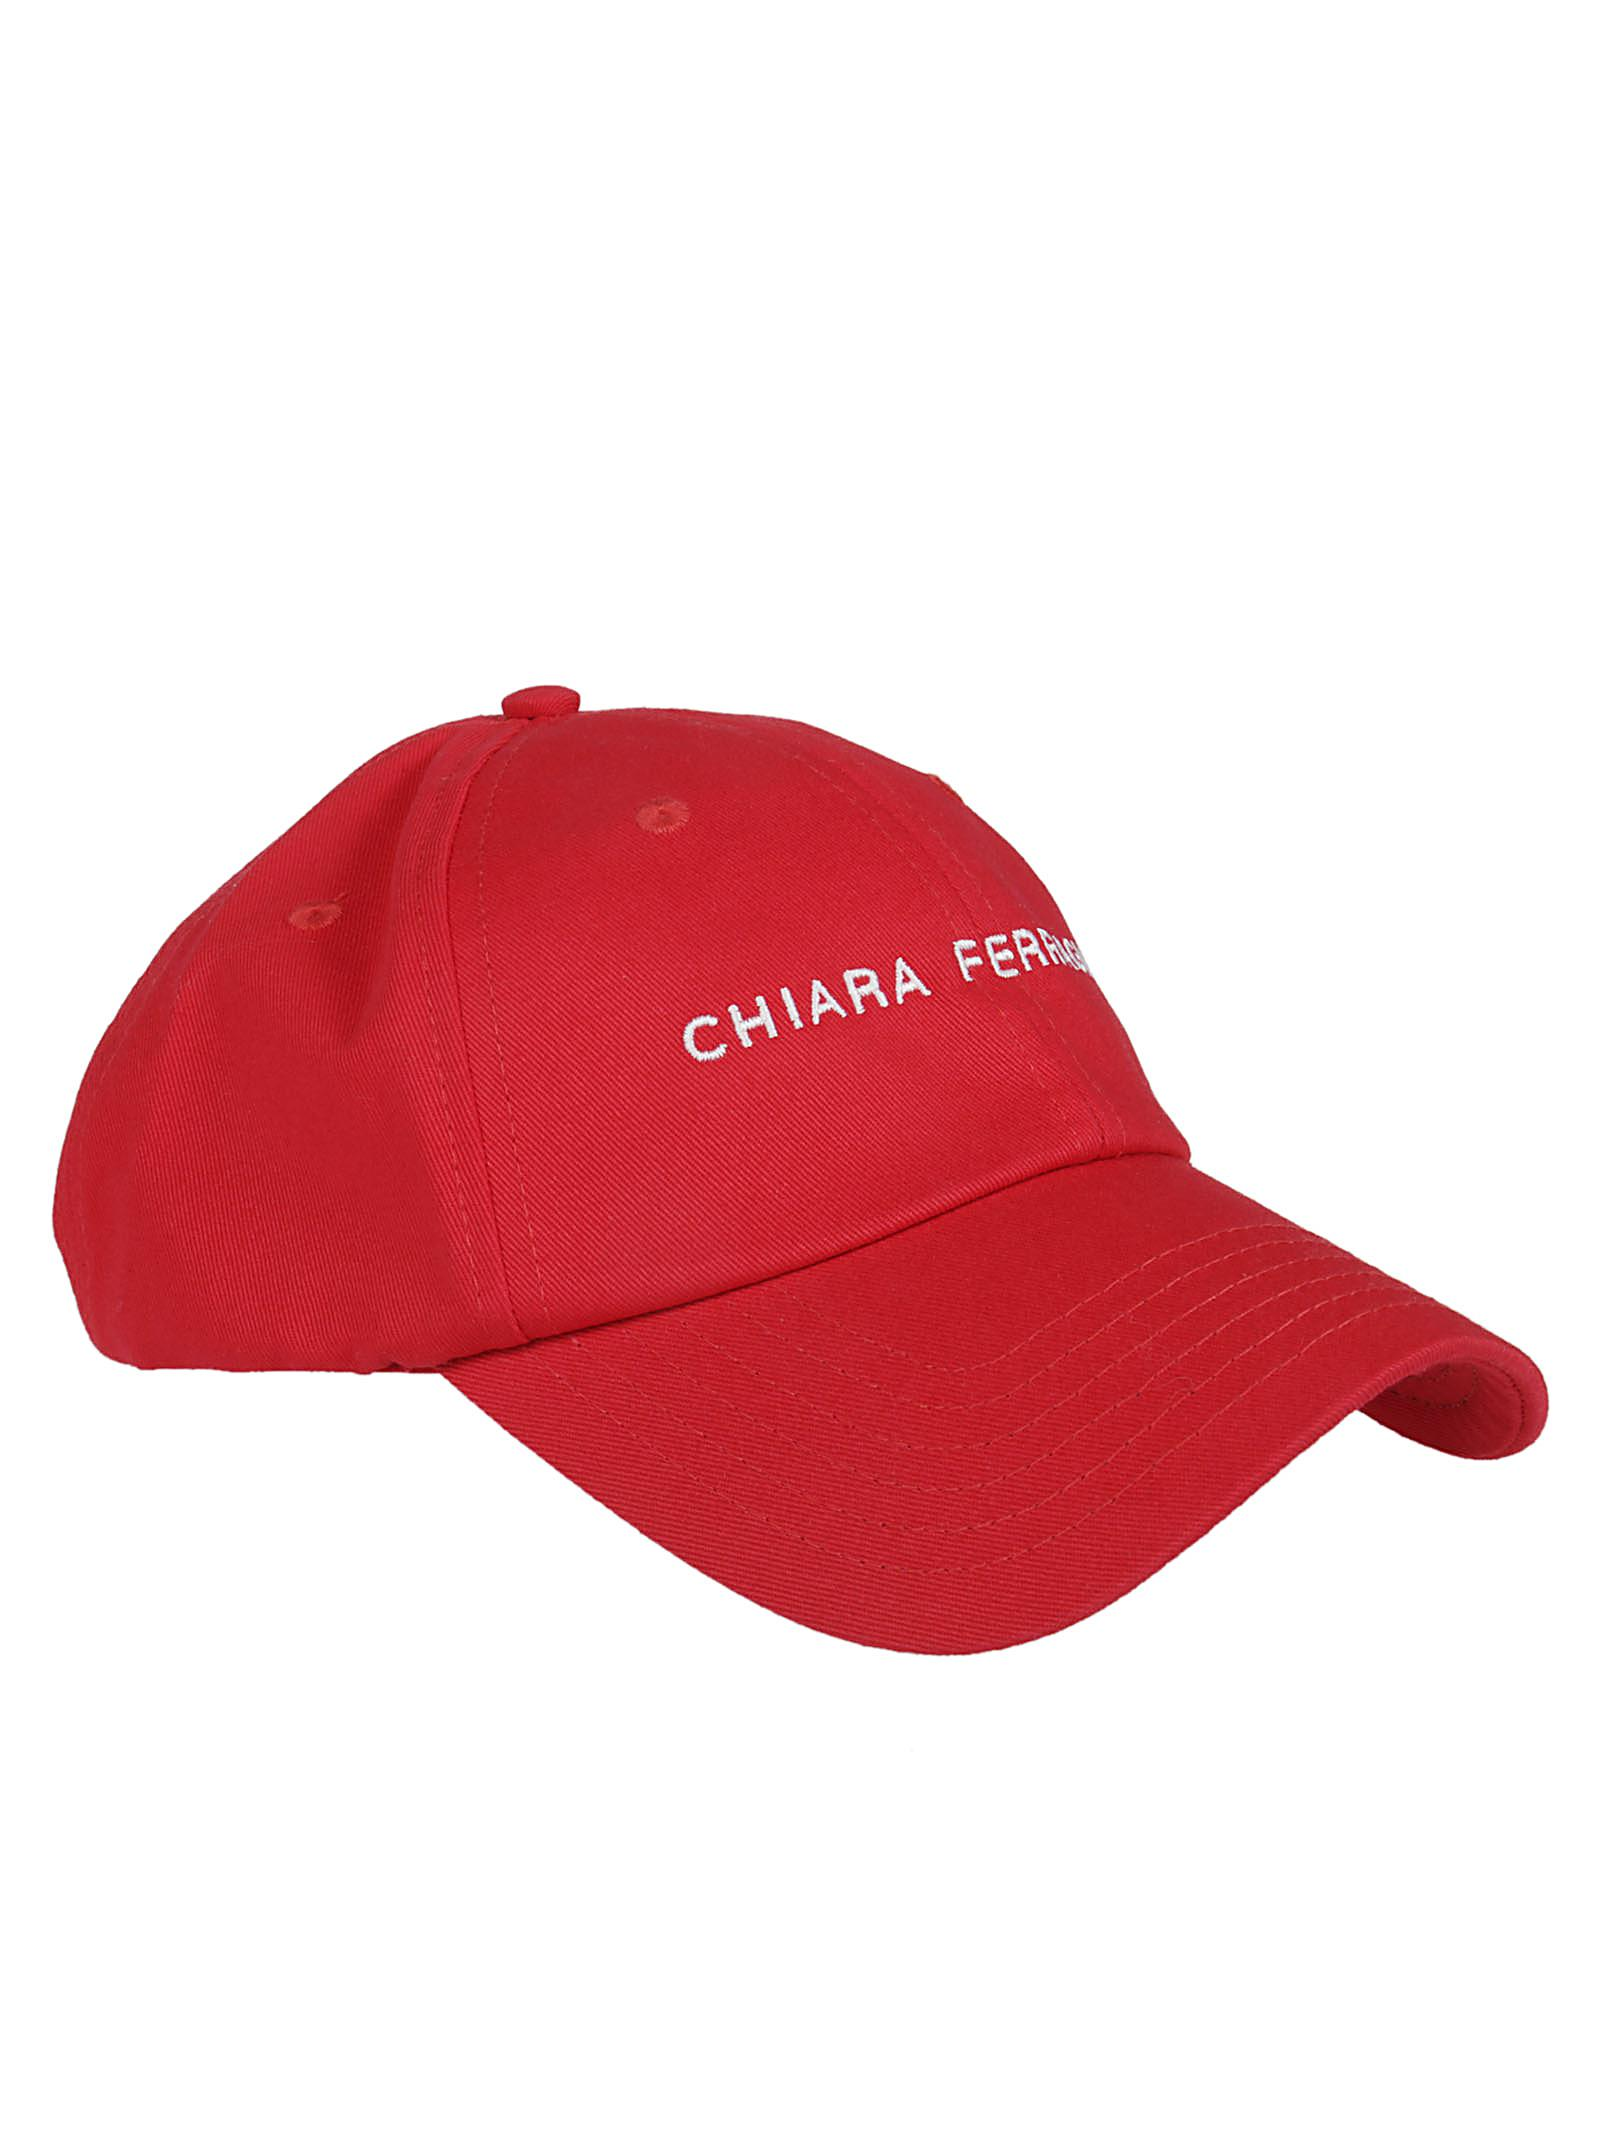 logo patch cap - Red Chiara Ferragni Xt9o7M3W